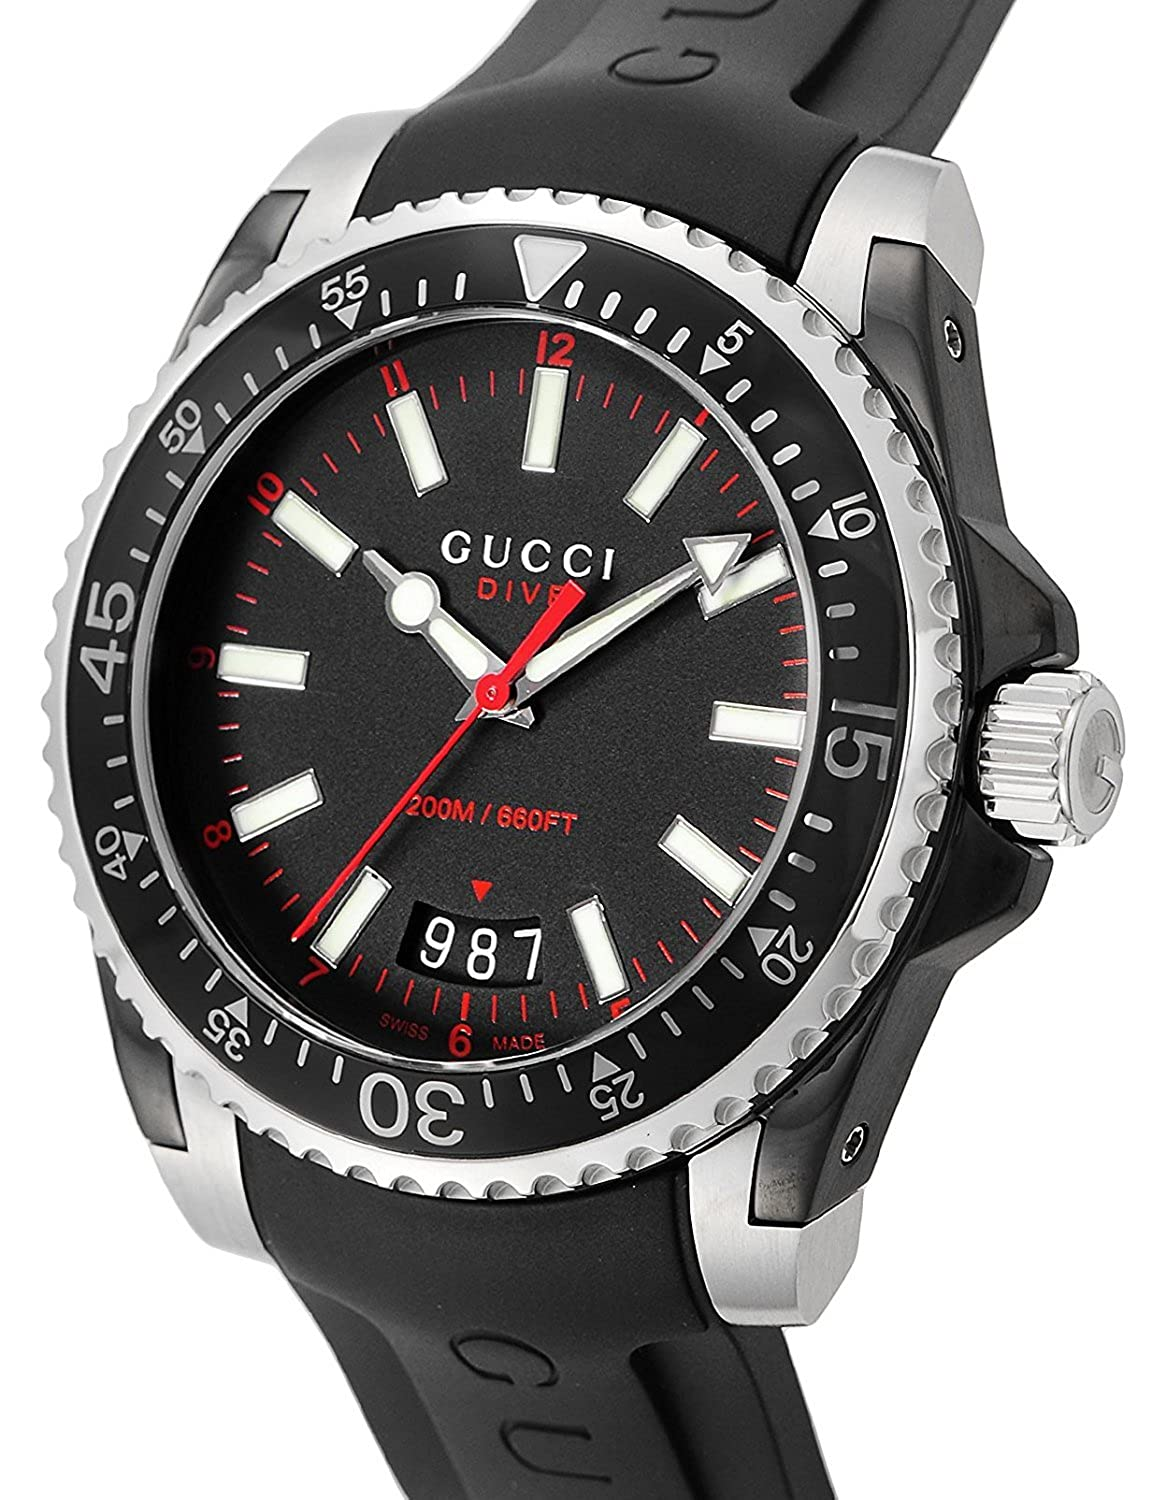 6283db6b5e5 Gucci Dive Stainless Steel Men s Watch with Black Rubber Band YA136303   Amazon.co.uk  Watches